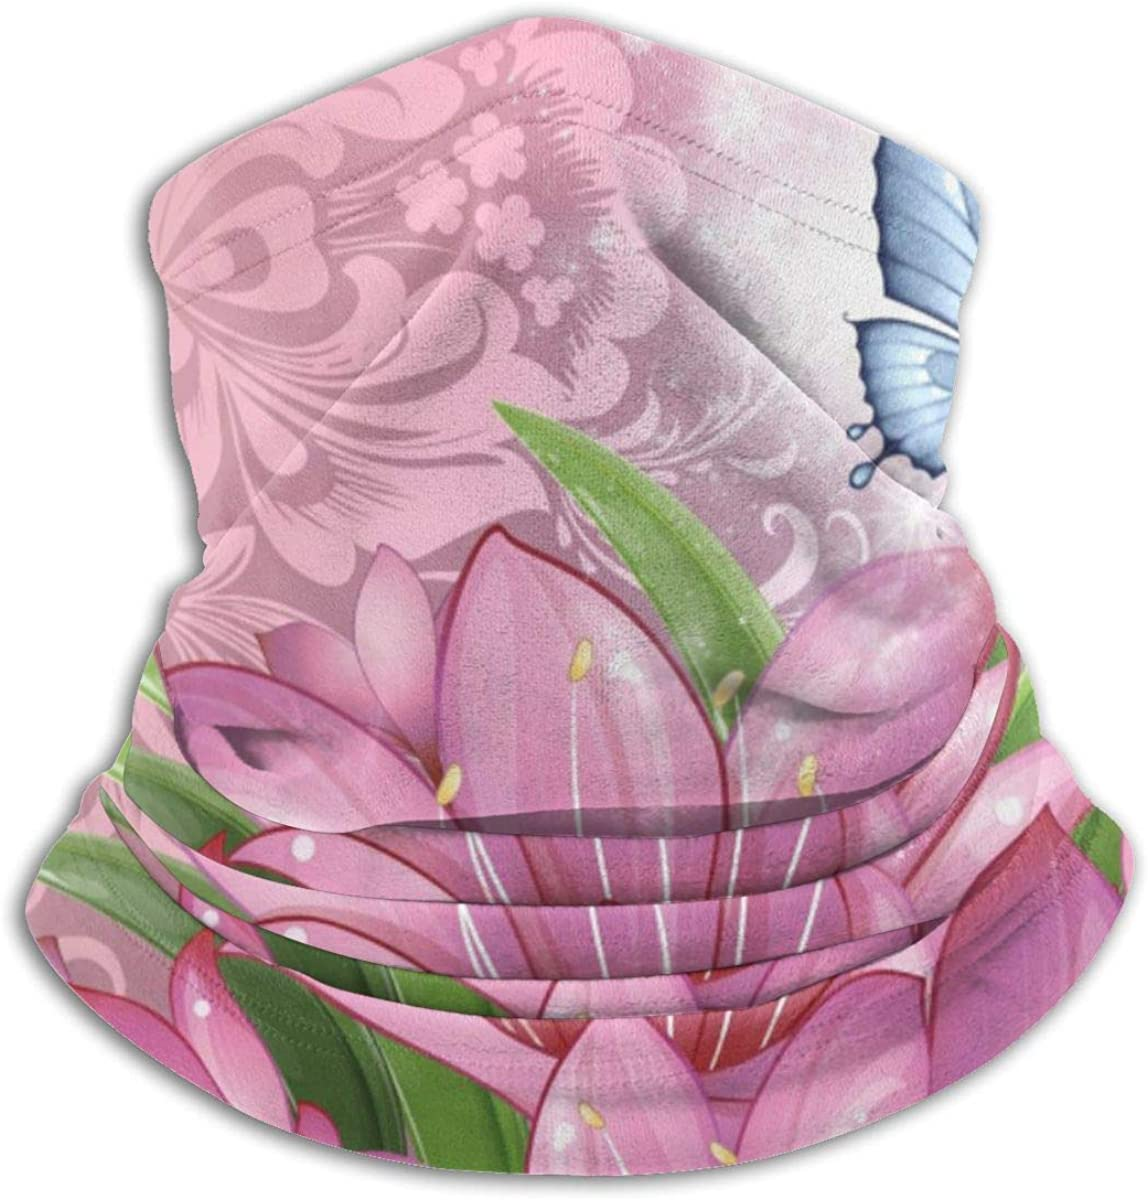 Towilliamsnya Face Scarf Pink Flowers Wallpaper Headband Scarf Balaclava